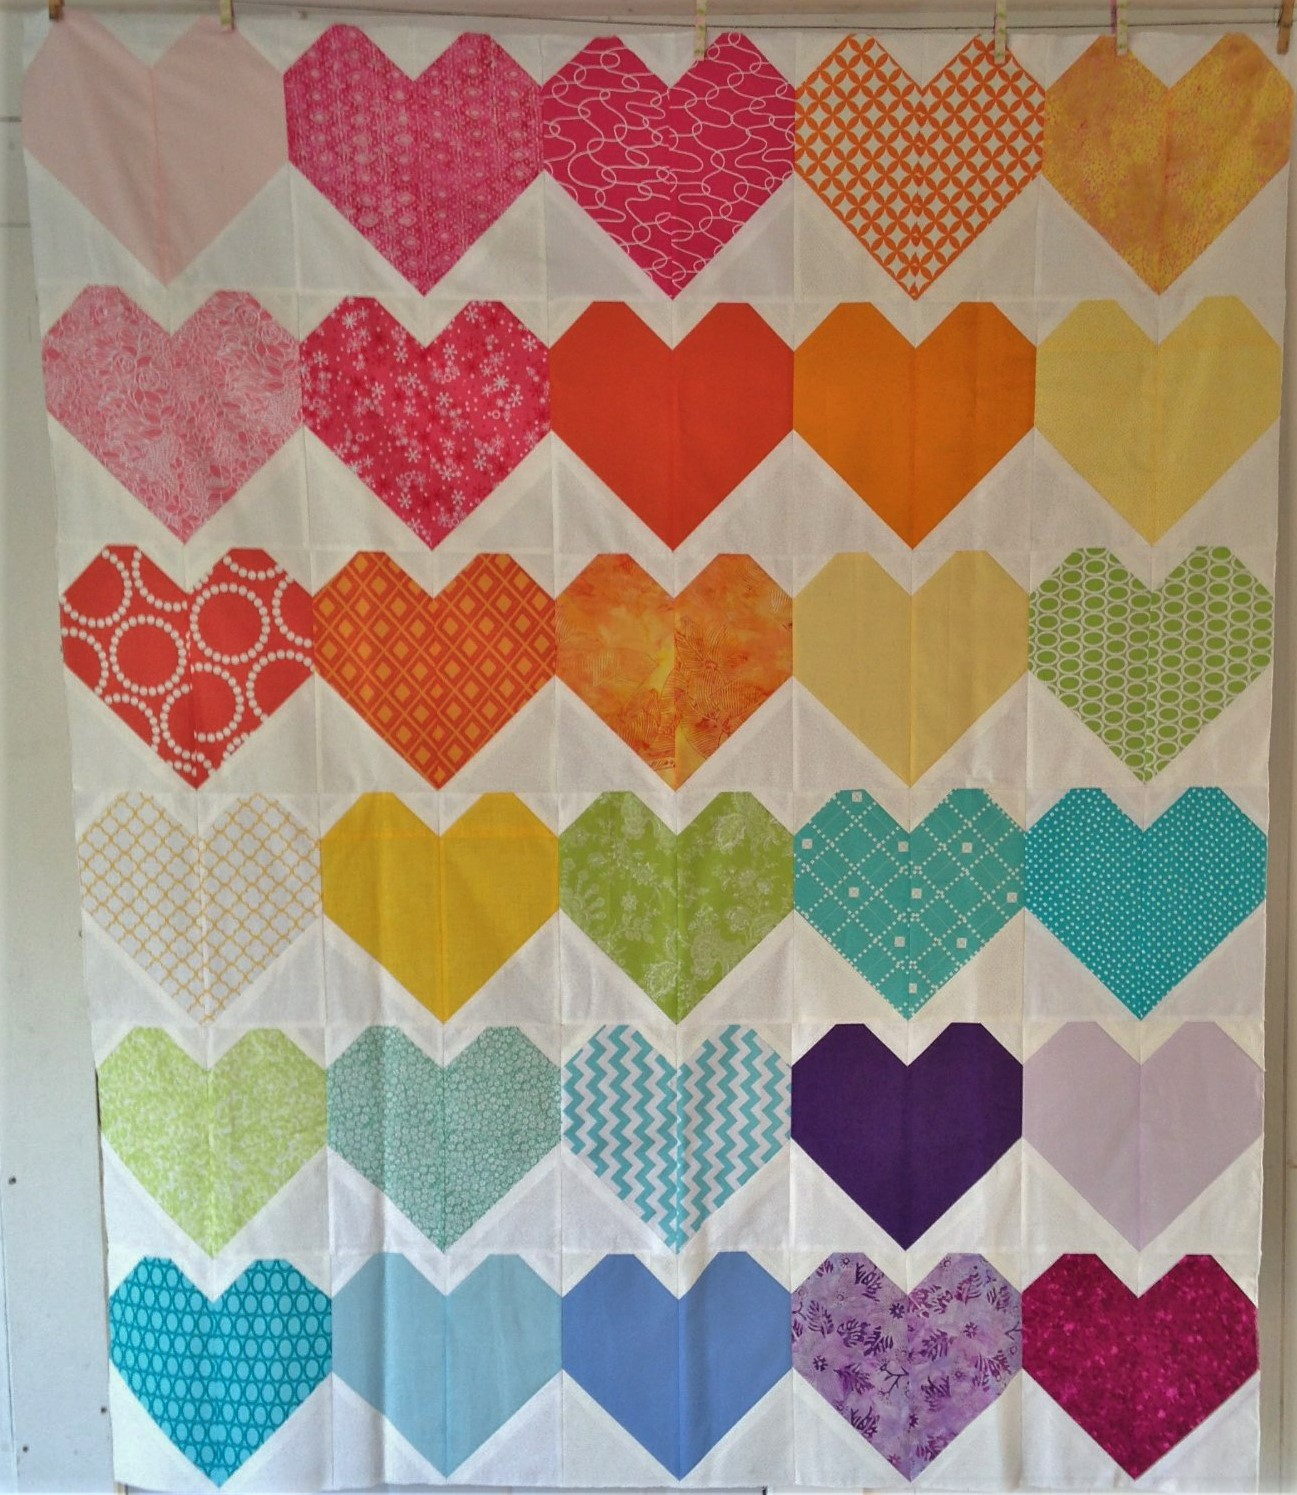 quilts-for-pulse-quilt-top-by-stitchified